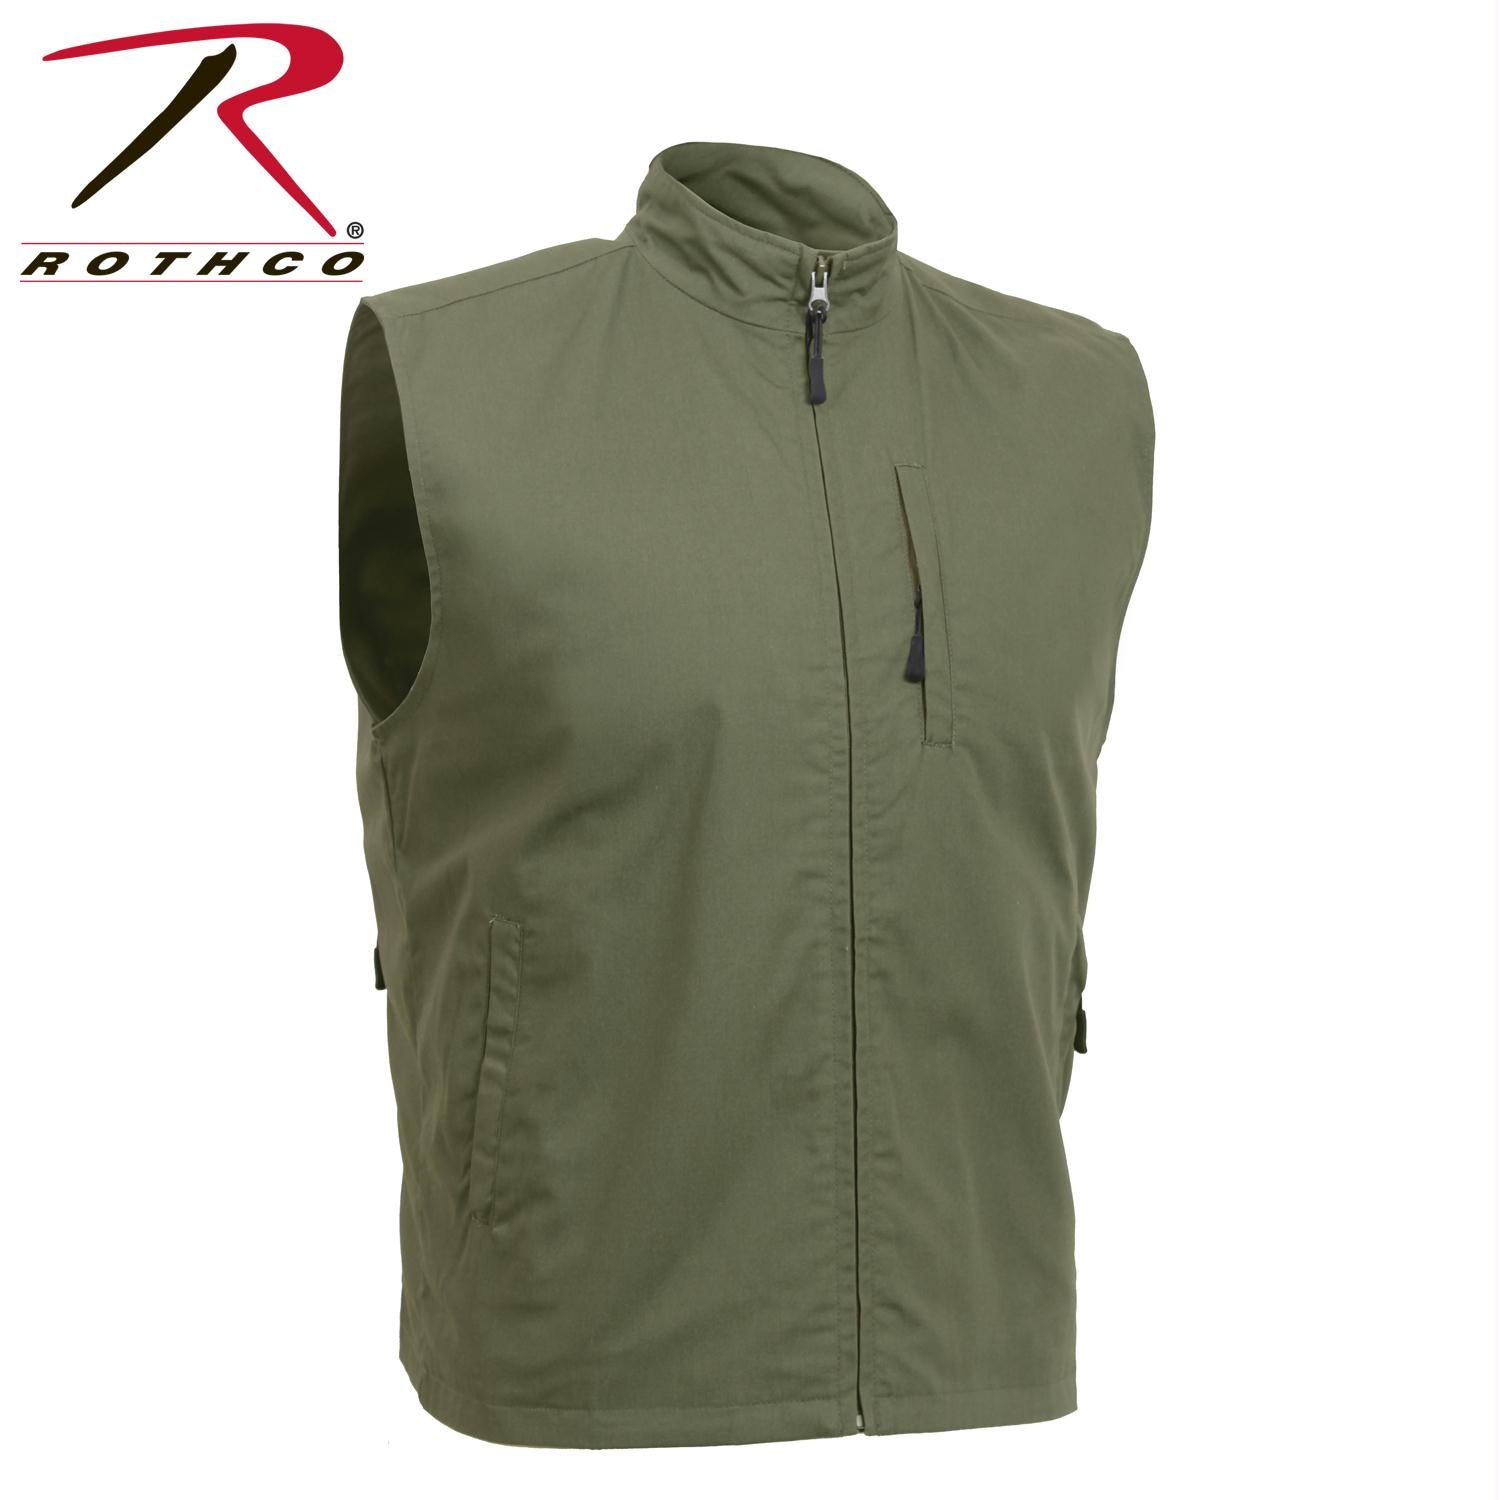 Rothco Undercover Travel Vest - Olive Drab / 3XL